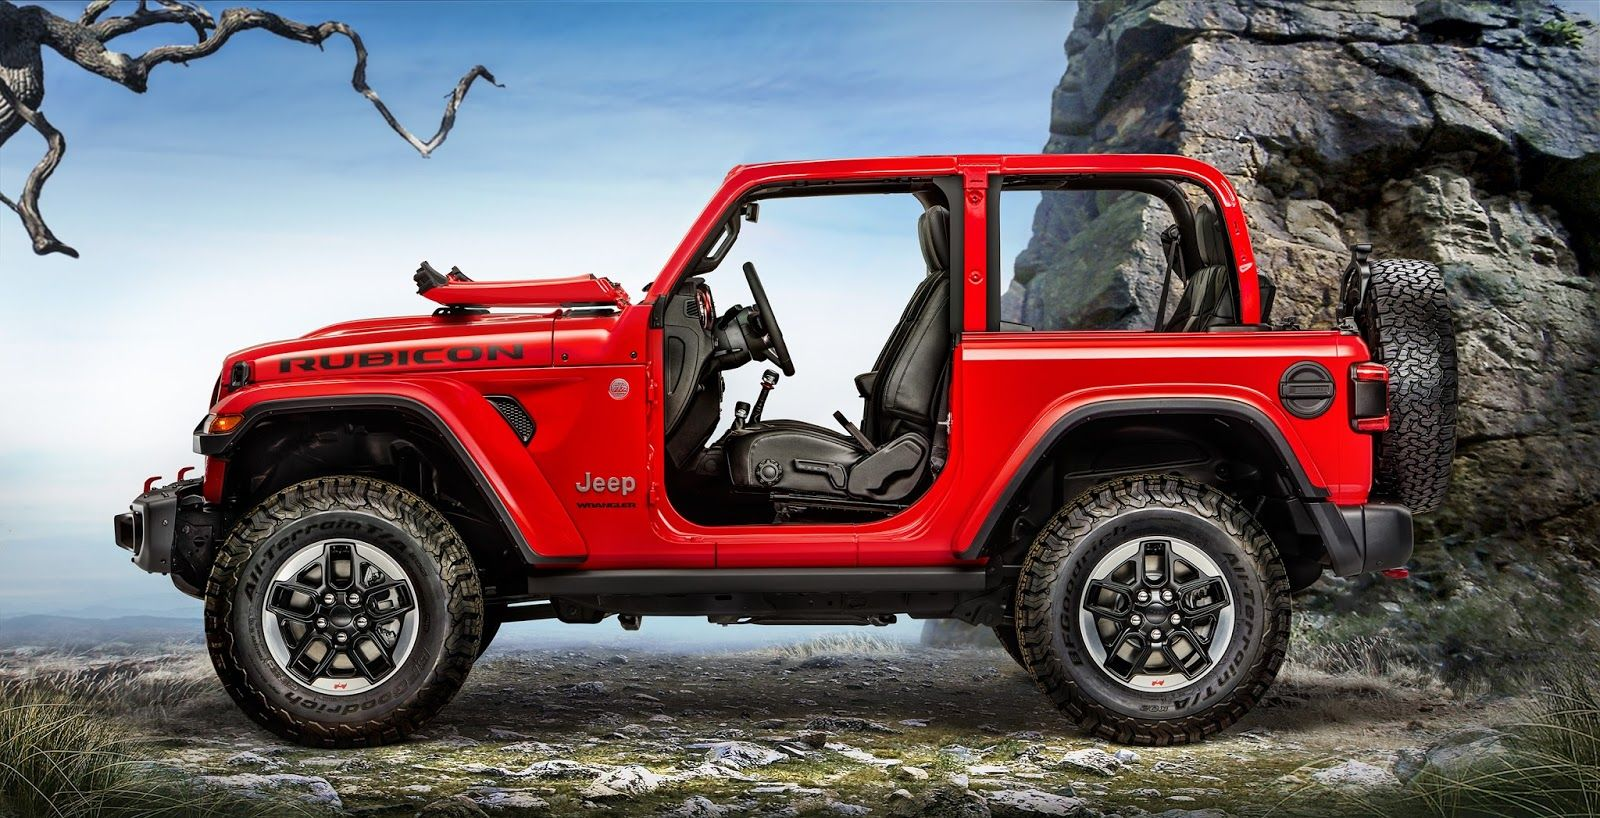 All New 2018 Jeep Wrangler Packed With More Than 75 Available Advanced Safety And Security Features New Jeep Wrangler Jeep Wrangler Rubicon Wrangler Jl